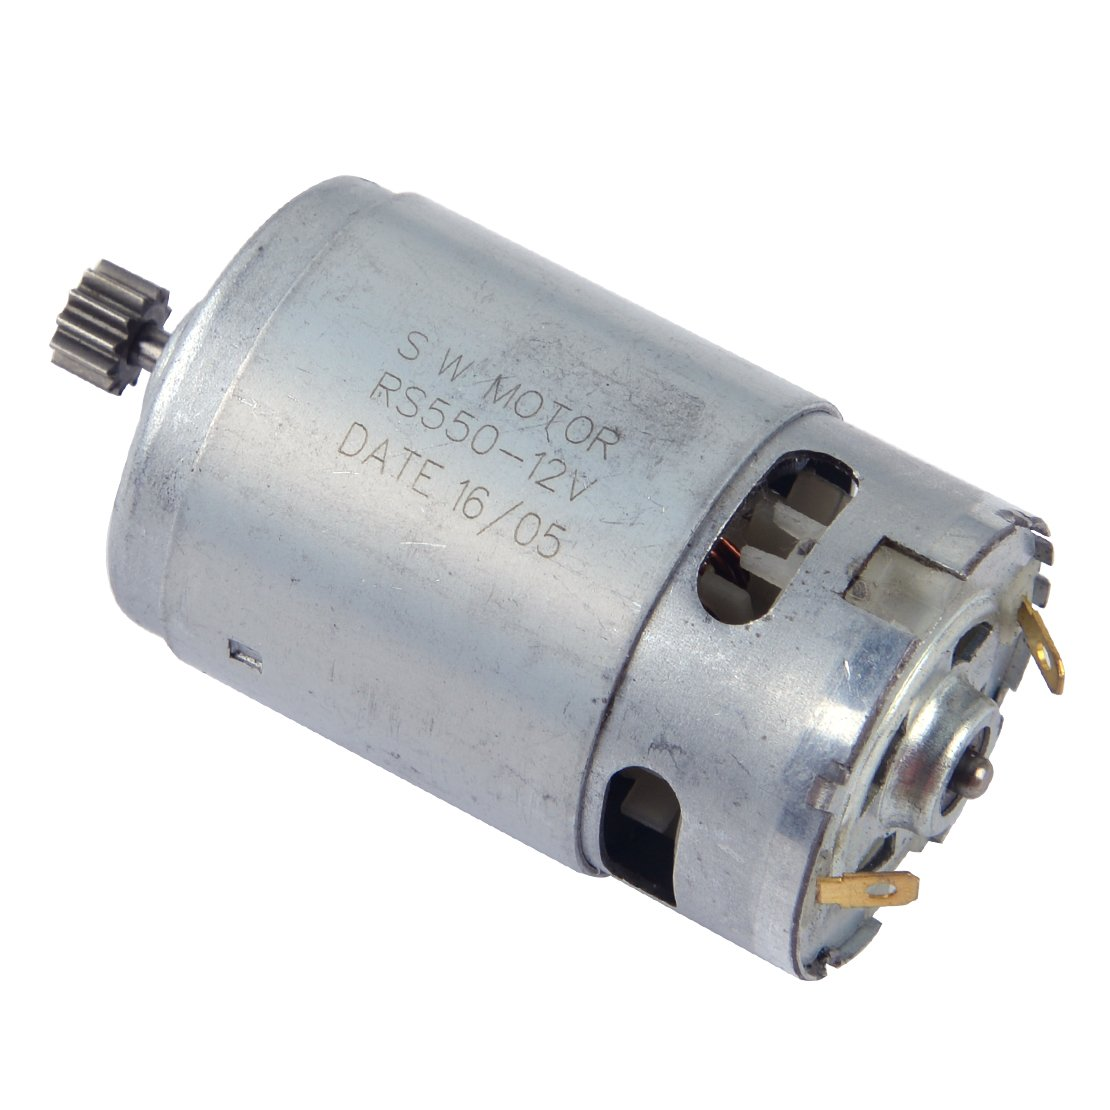 12V RS550 Motor for Electric Screwdriver Cordless Drill 12 Teeth Gear & 3mm Shaft Diameter